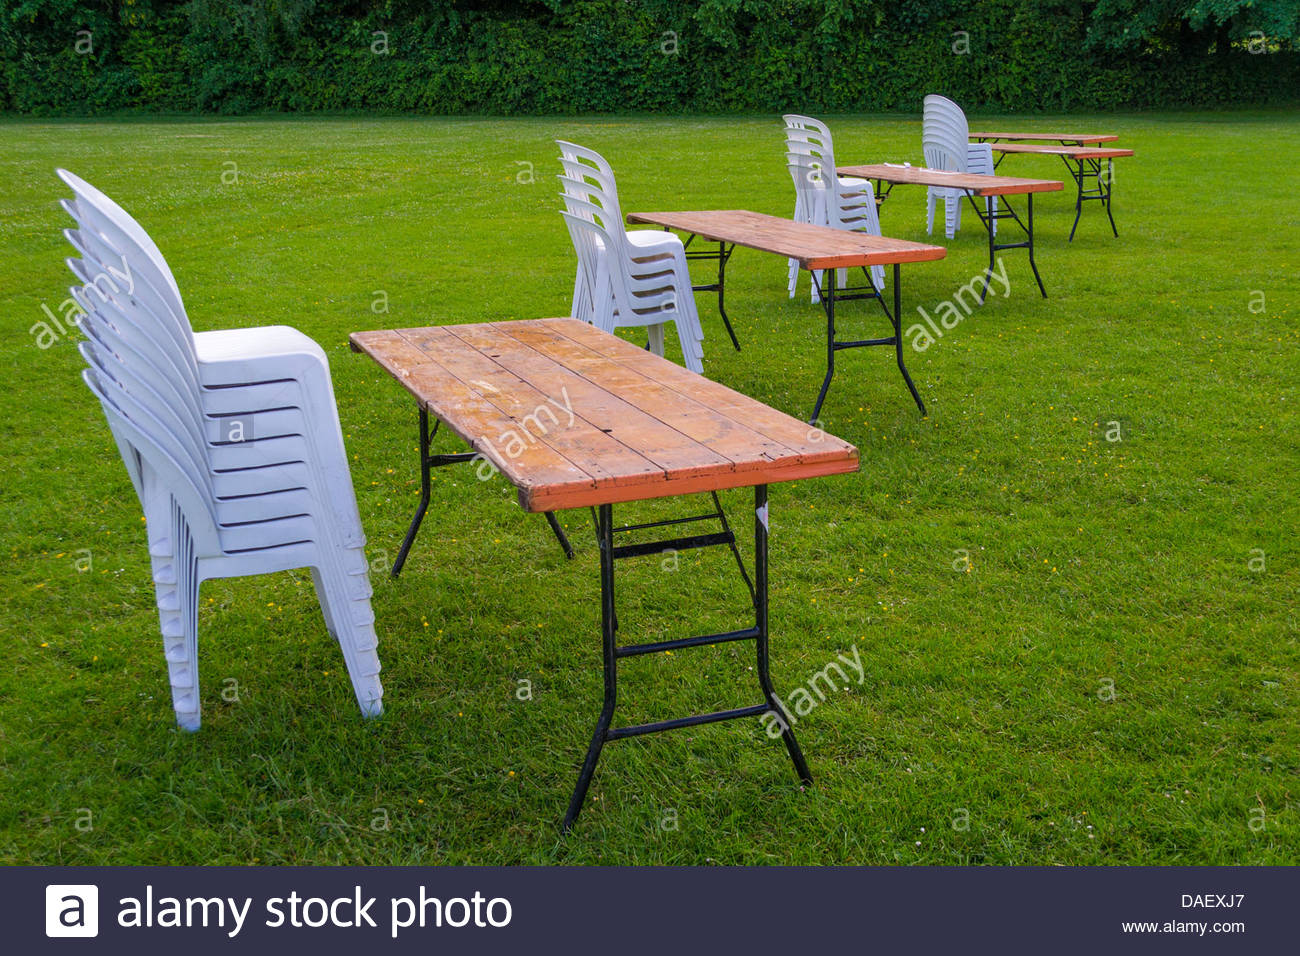 Tables And Chairs Stacked In A Line Stock Photo: 58105887 ...